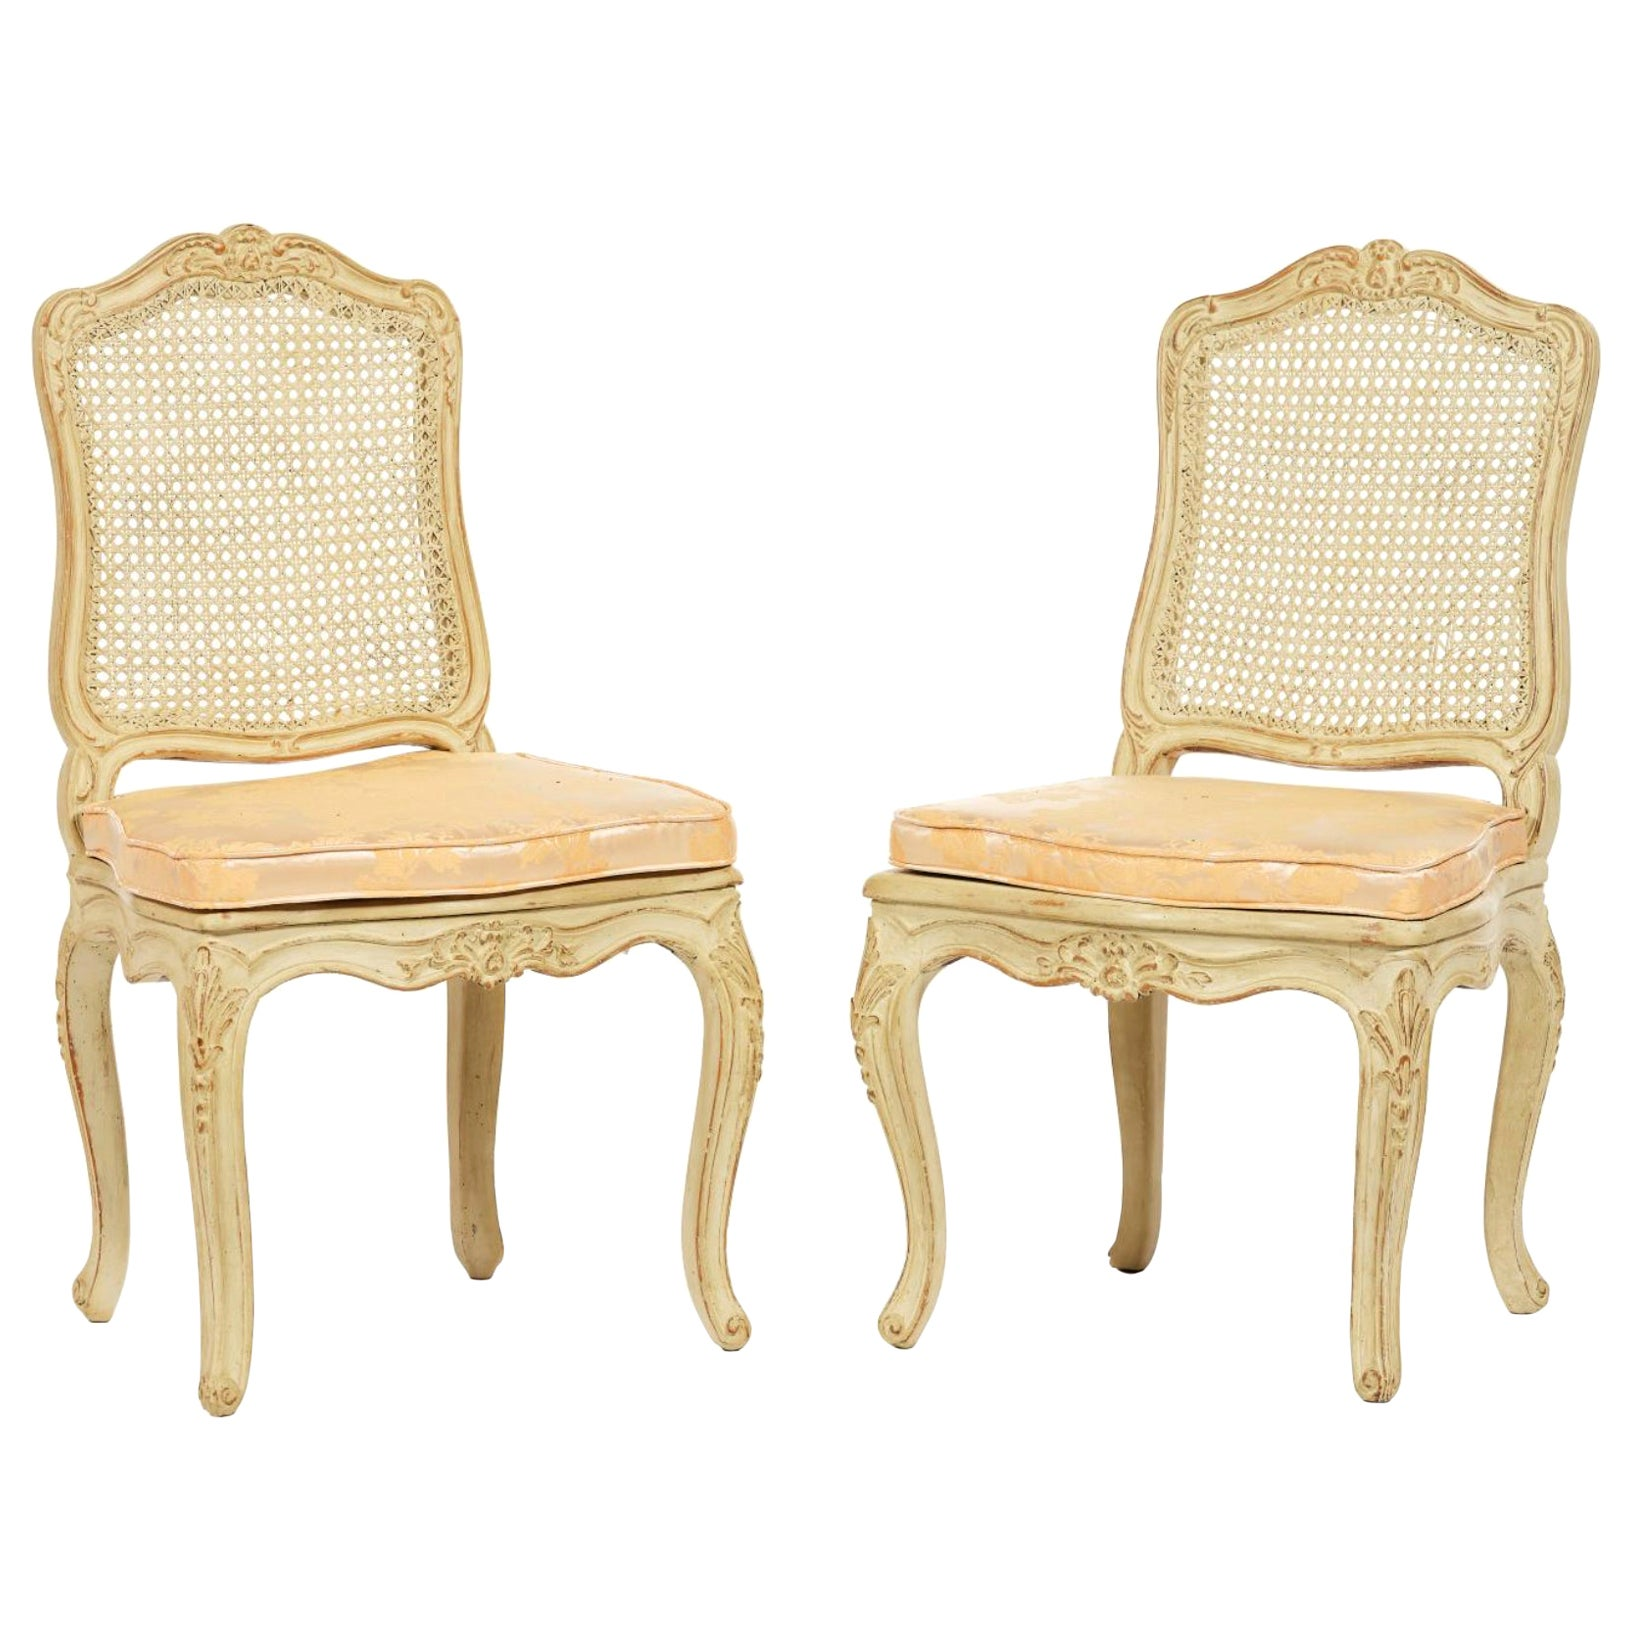 19th Century French Louis XV Pair of Caned Chairs in Moulded and Carved Wood